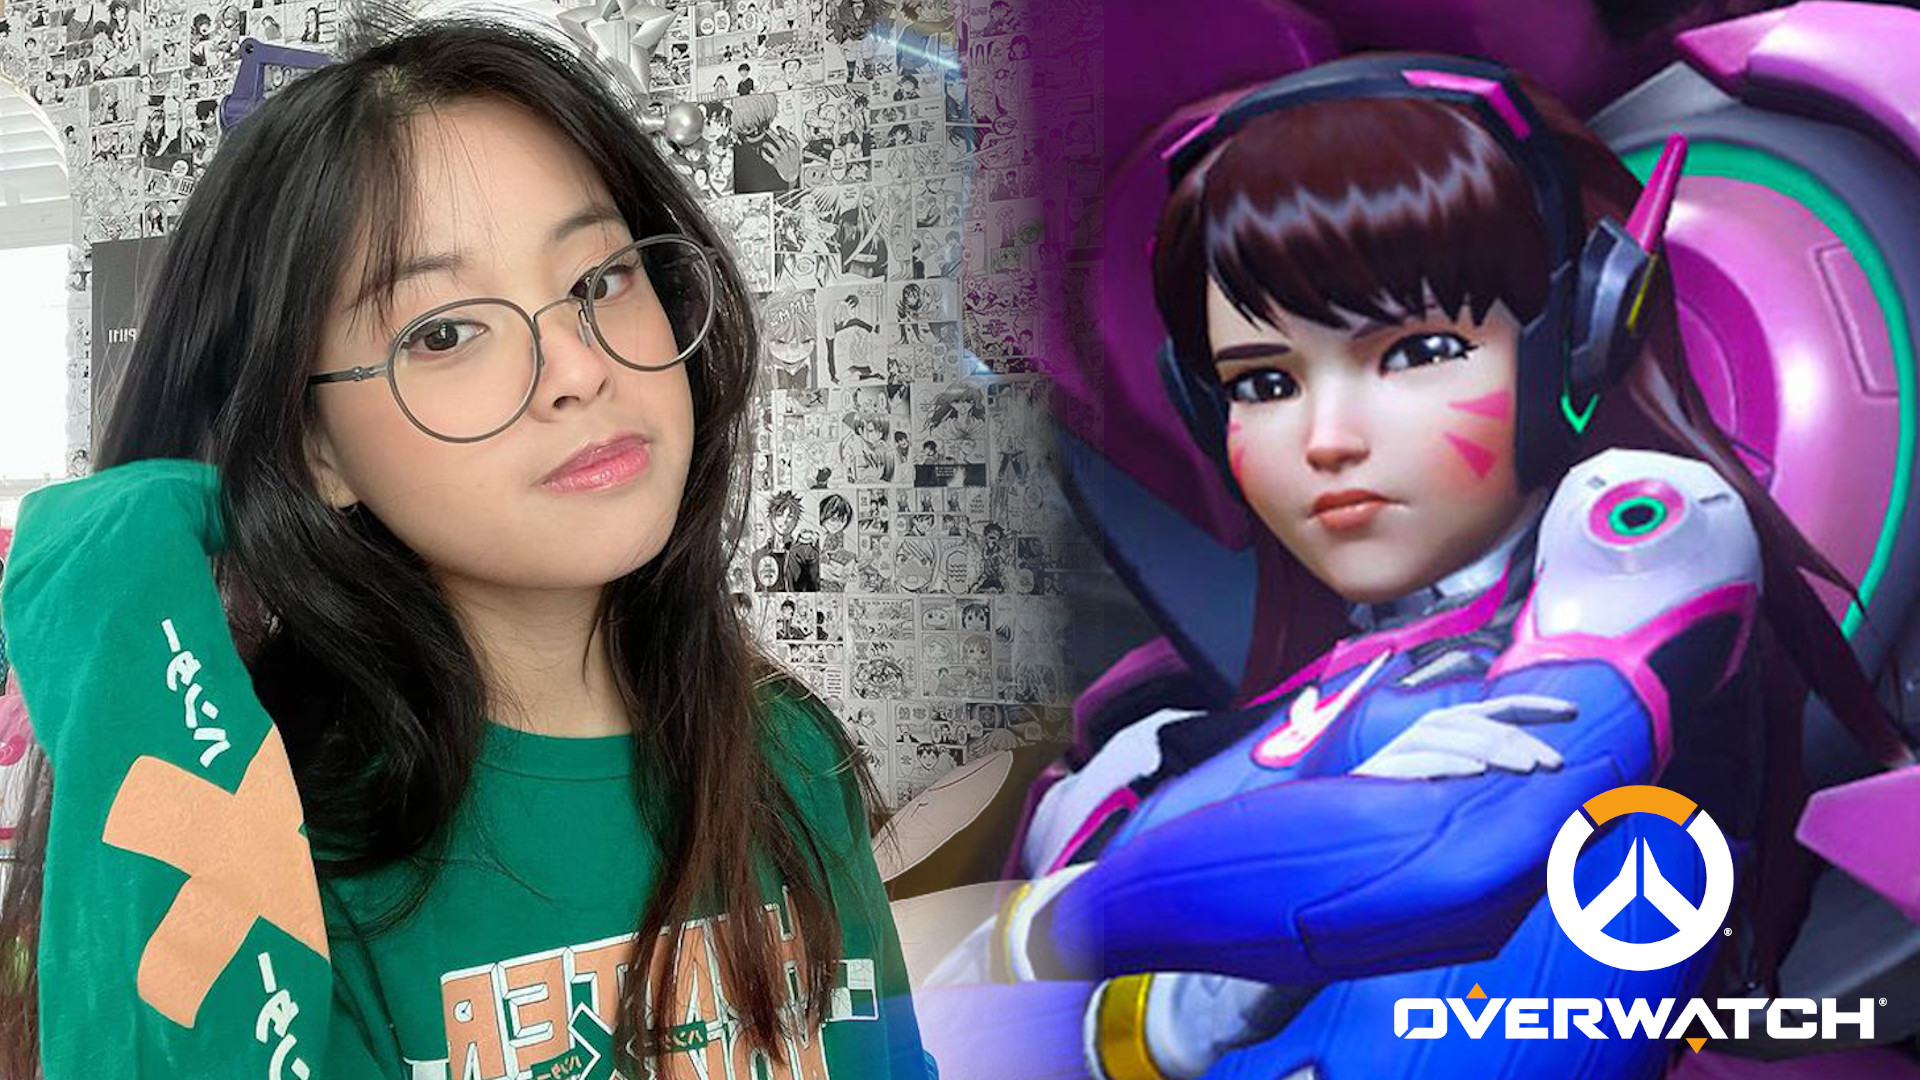 niko overwatch dva cosplay